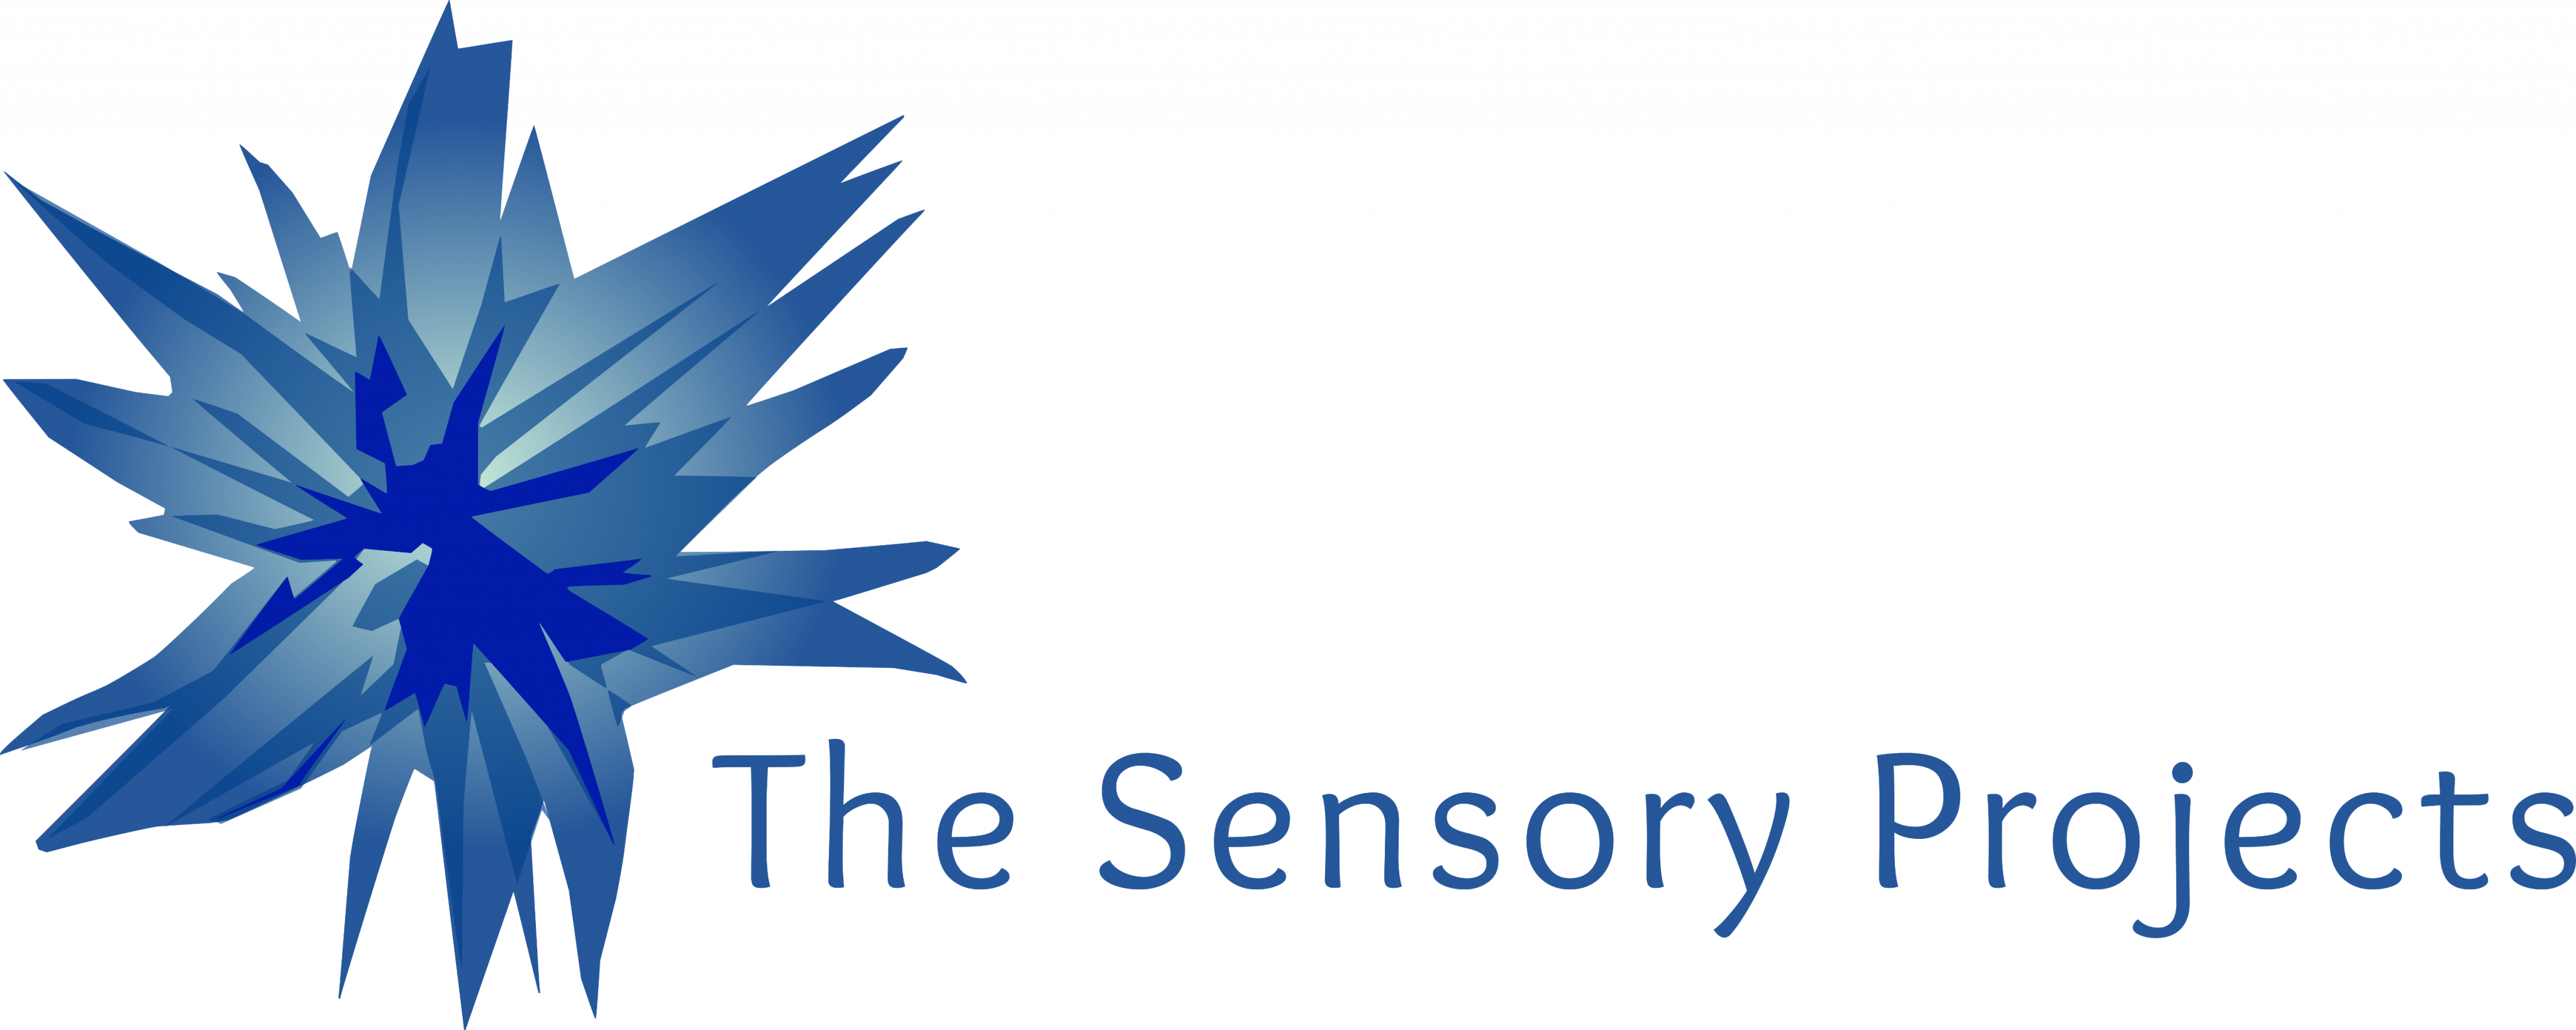 The Sensory Projects